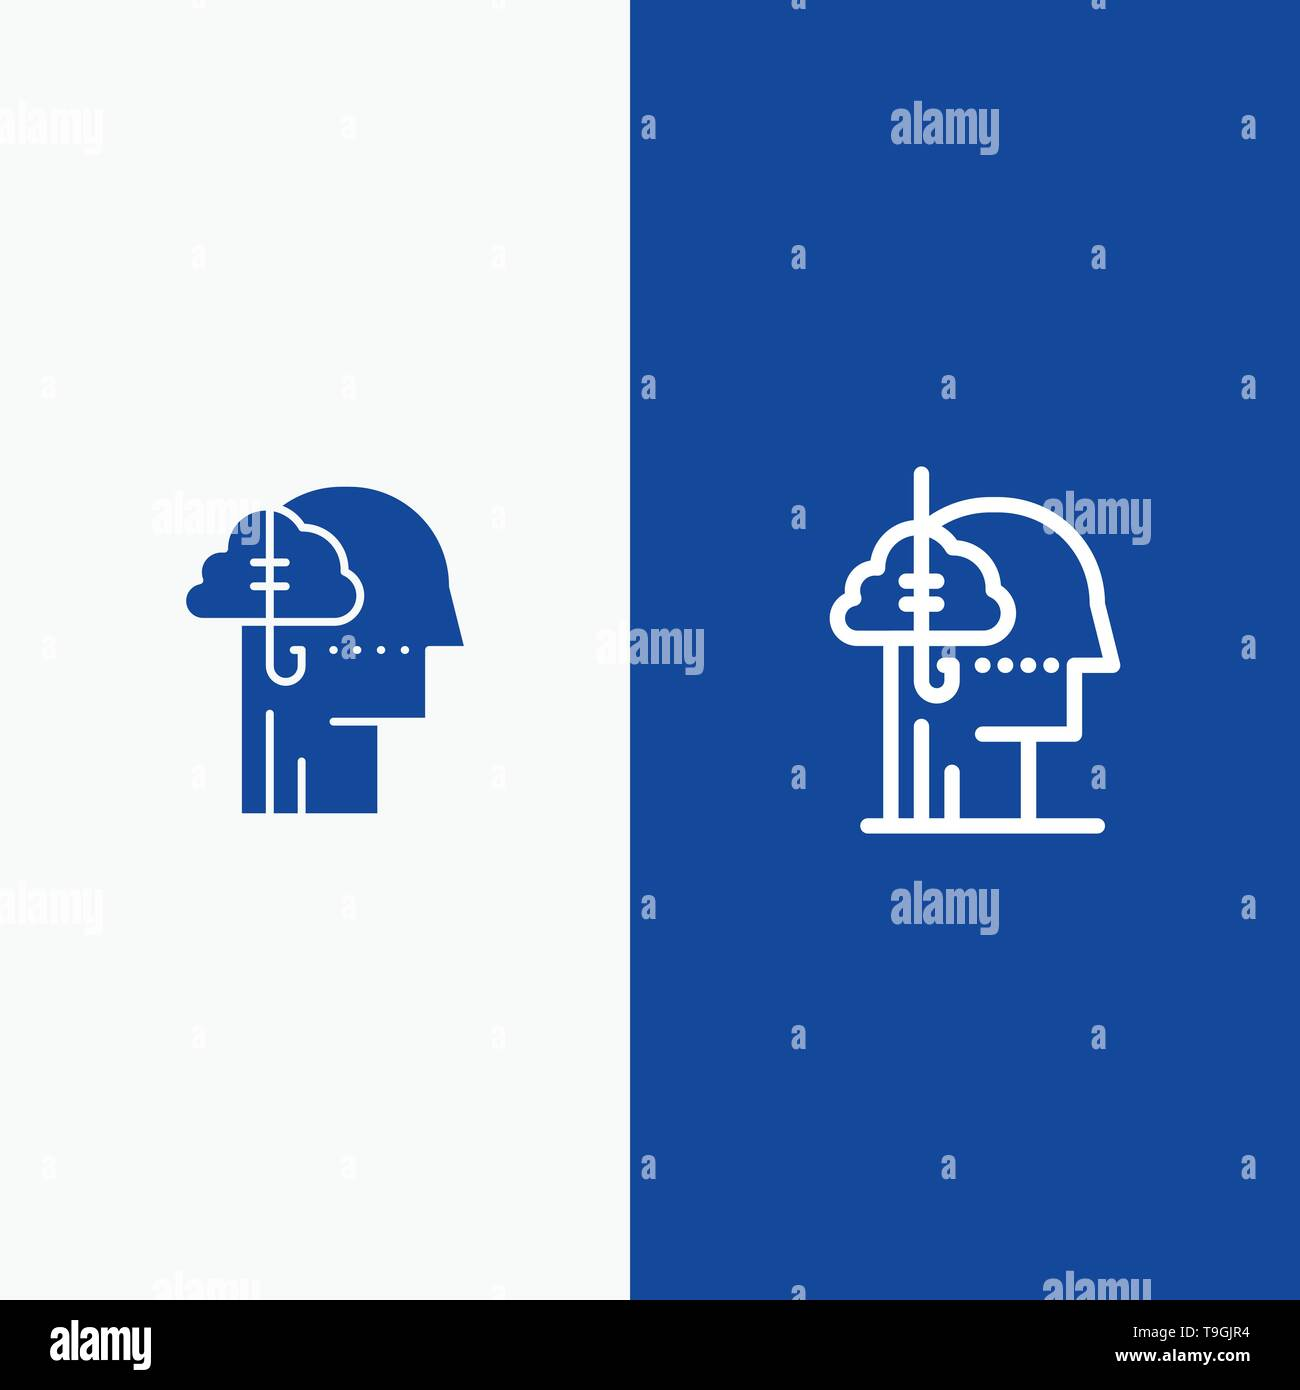 Borrowing Ideas, Addiction, Catch, Habit, Human Line and Glyph Solid icon Blue banner Line and Glyph Solid icon Blue banner - Stock Image